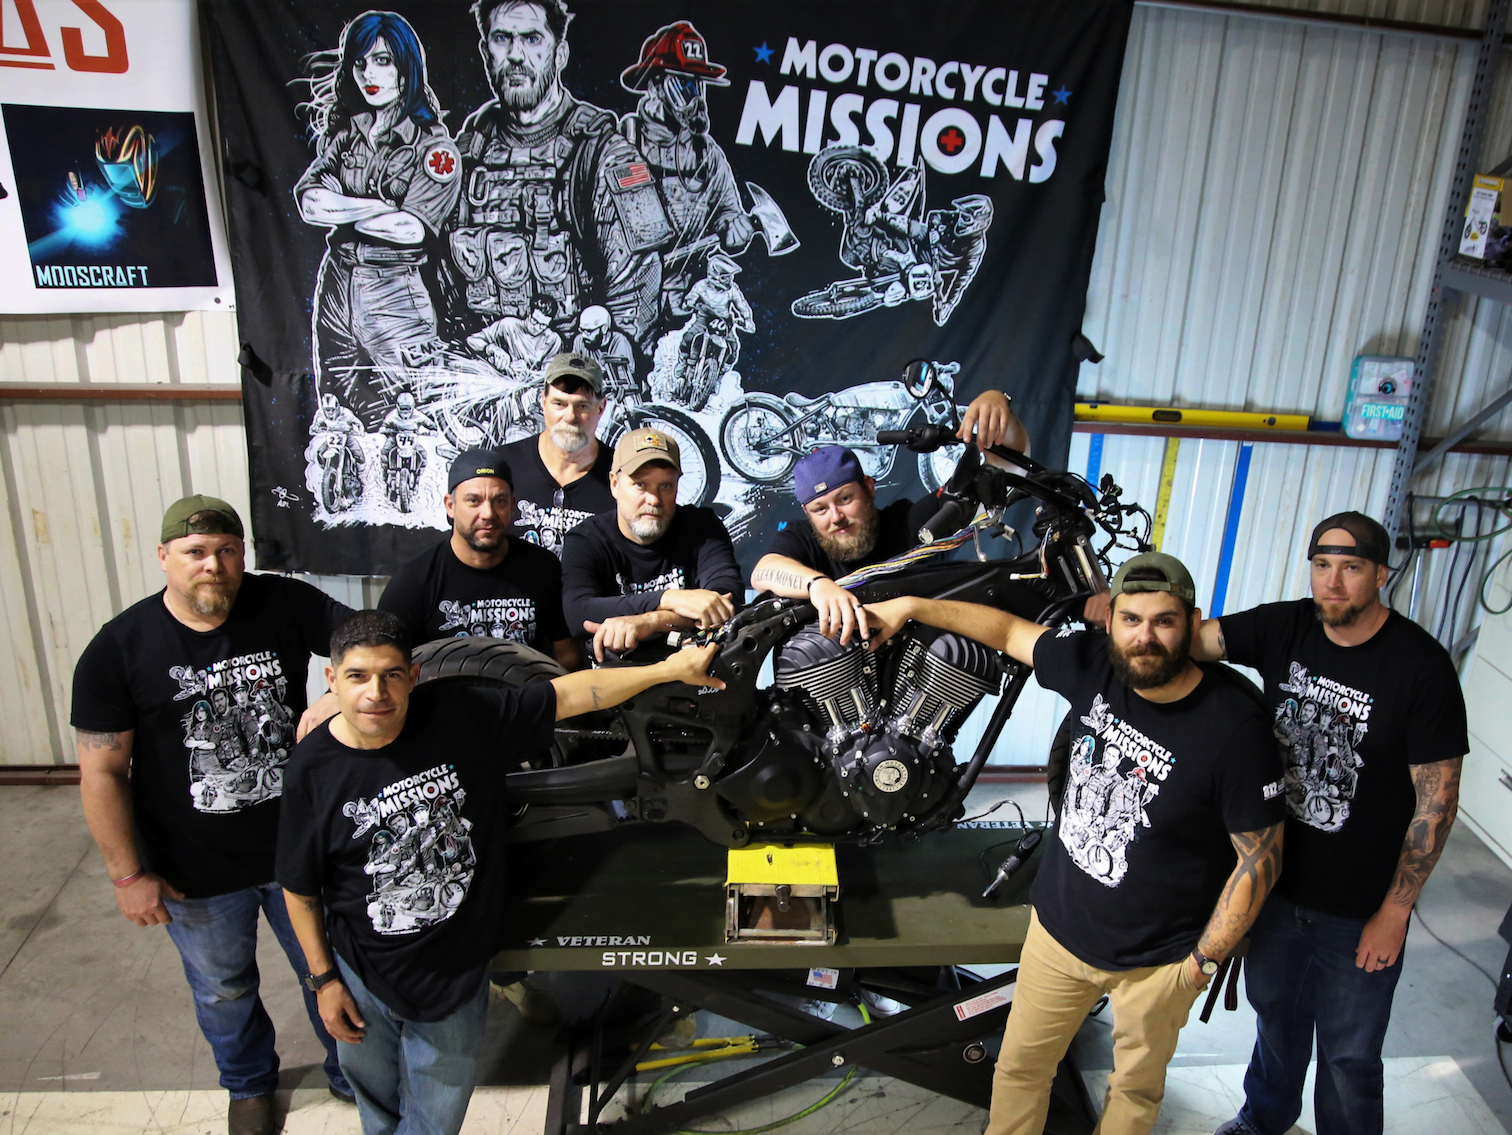 Indian Motorcycle motorcycle mission Team Dallas